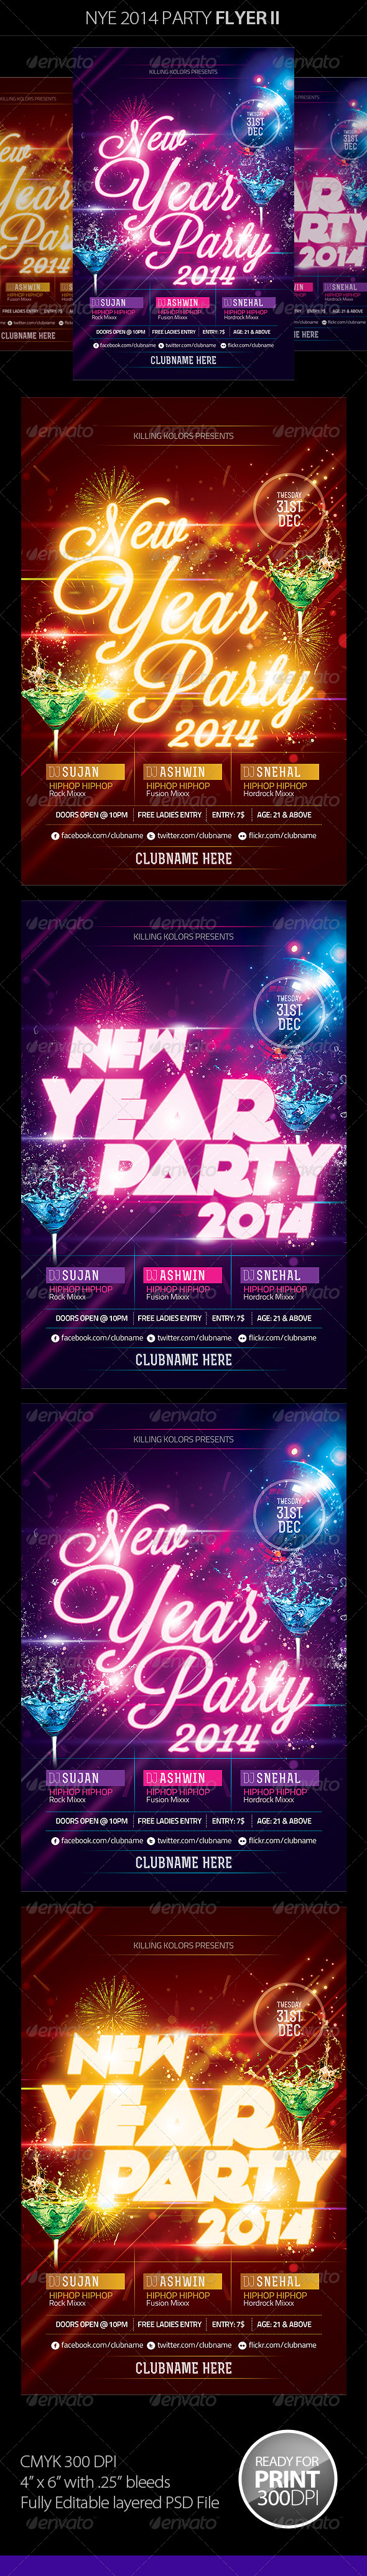 GraphicRiver New Year Party Flyer 6446961